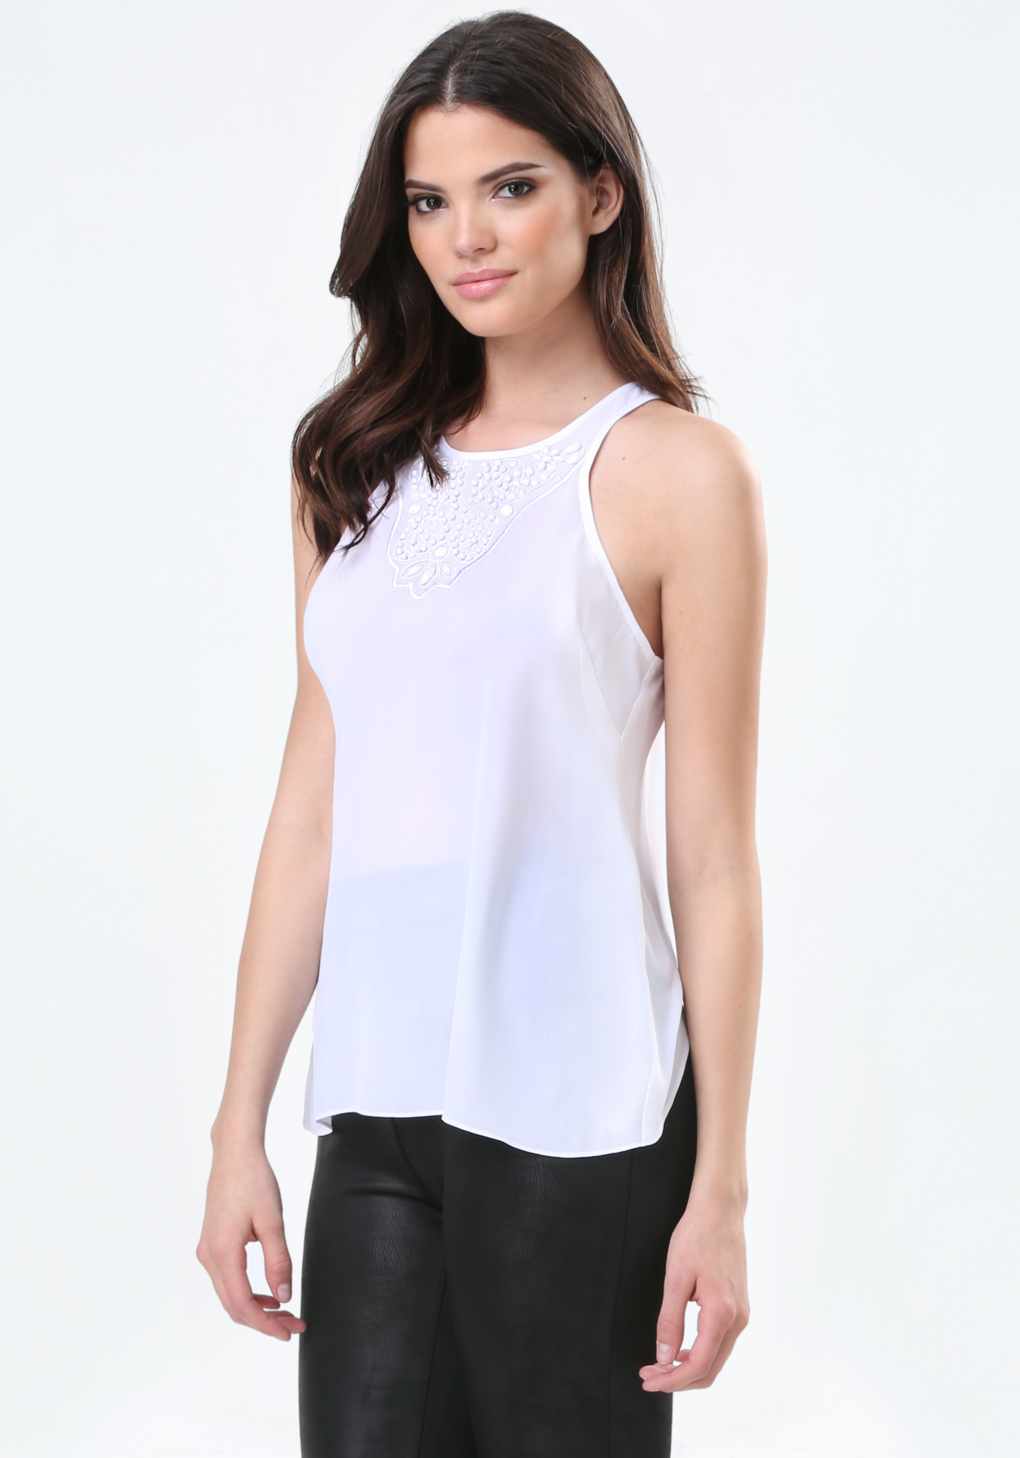 Bebe | Women's Clothing and Apparel, Dresses, Tops, Jeans, Shoes, Bags & More Shop Now We found list of 38 store websites similar to Bebe from about 21,+ online company shops in total.